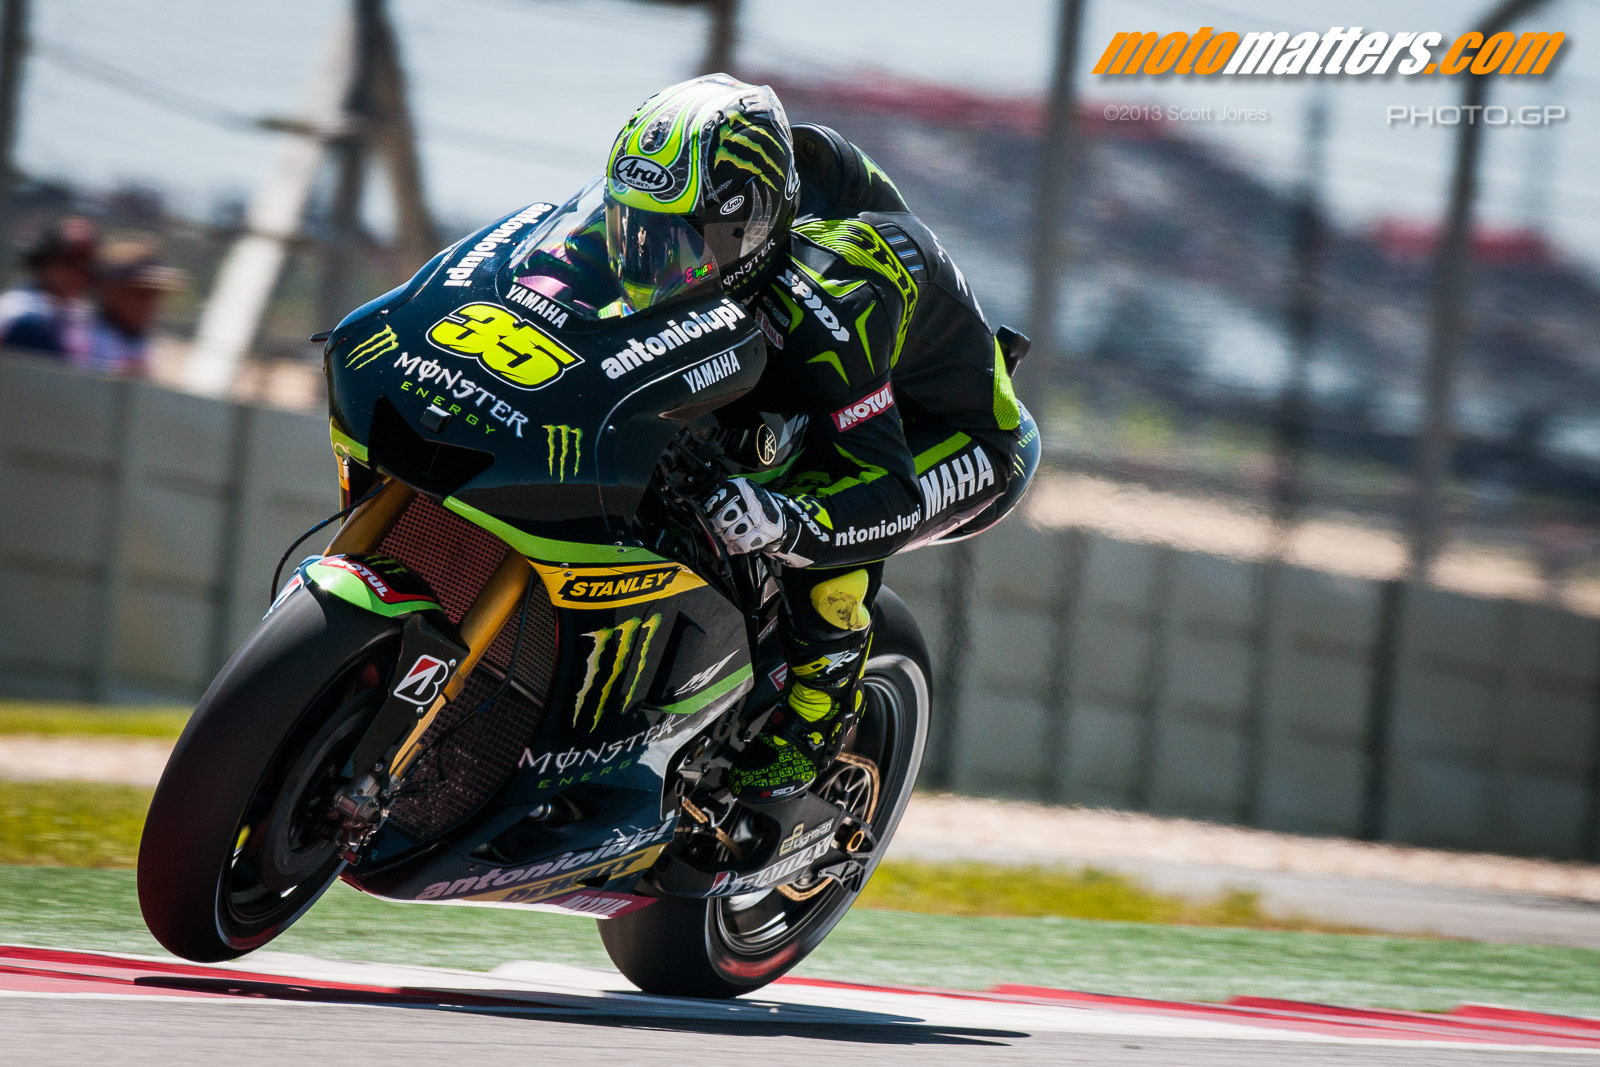 [GP] Austin 2013-MotoGP-01-CotA-Friday-0878-O